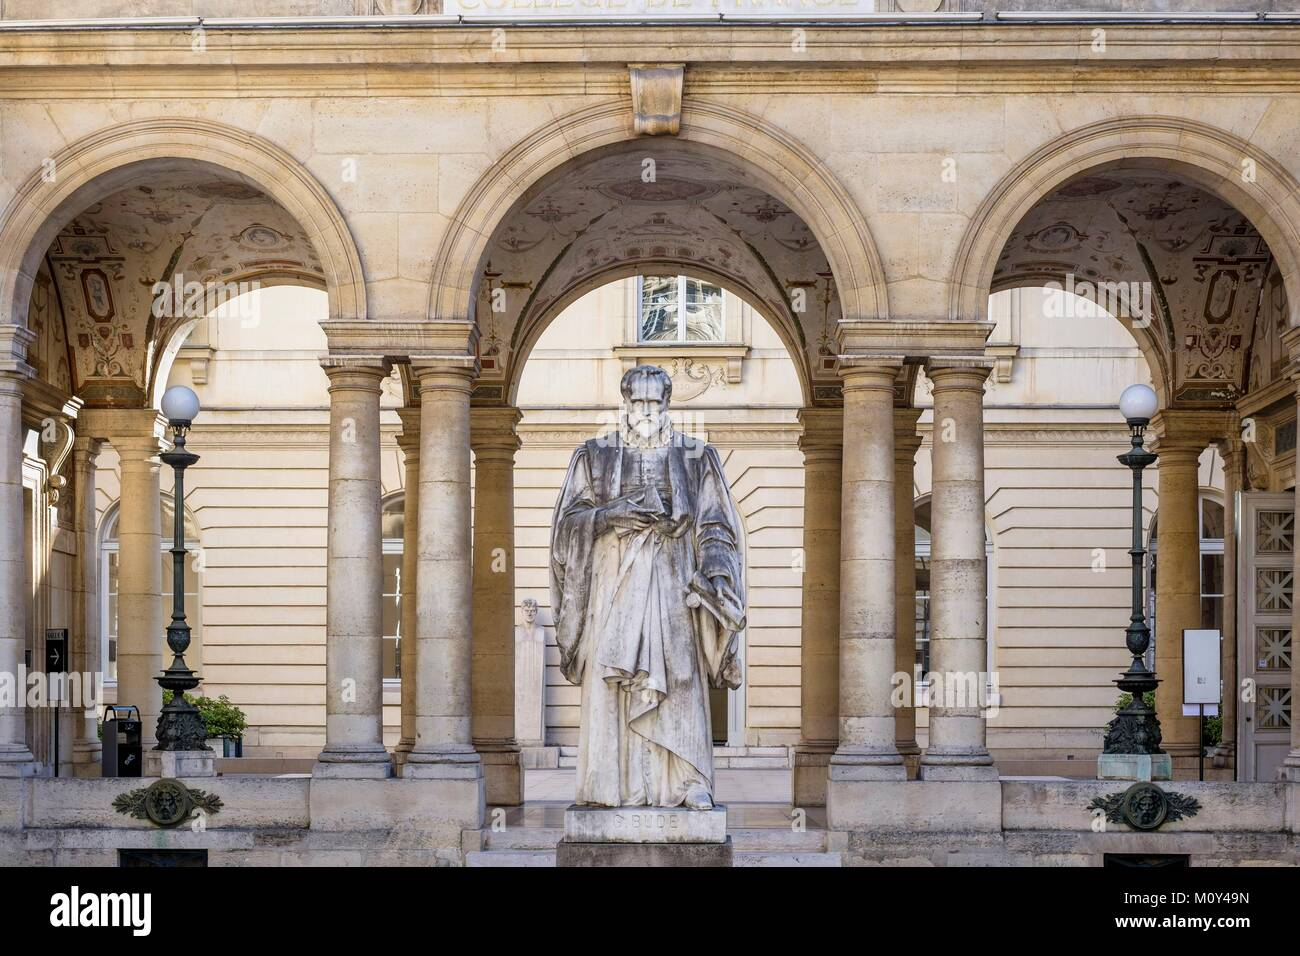 France,Paris,Quartier Latin,Saint-Jacques street,the College de France,founded in 1530,is a renowned higher education - Stock Image